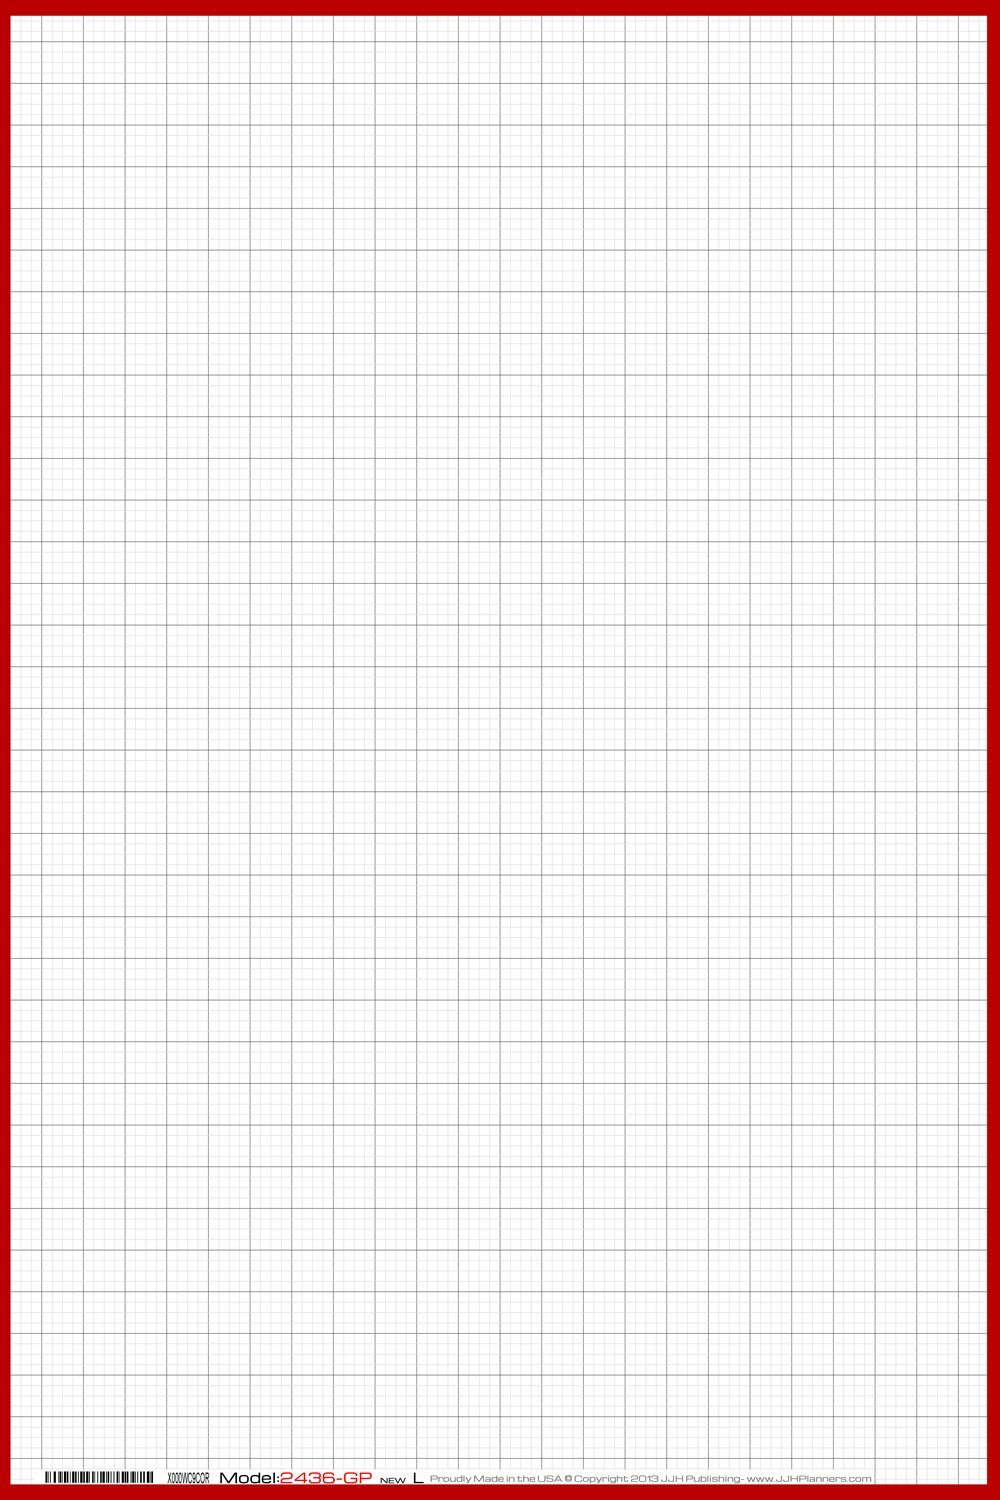 custom grid paper You searched for graph paper narrow results type graph paper (8) proposals (1) show all format manual (1) show all carbonless copy single - 1 (7.